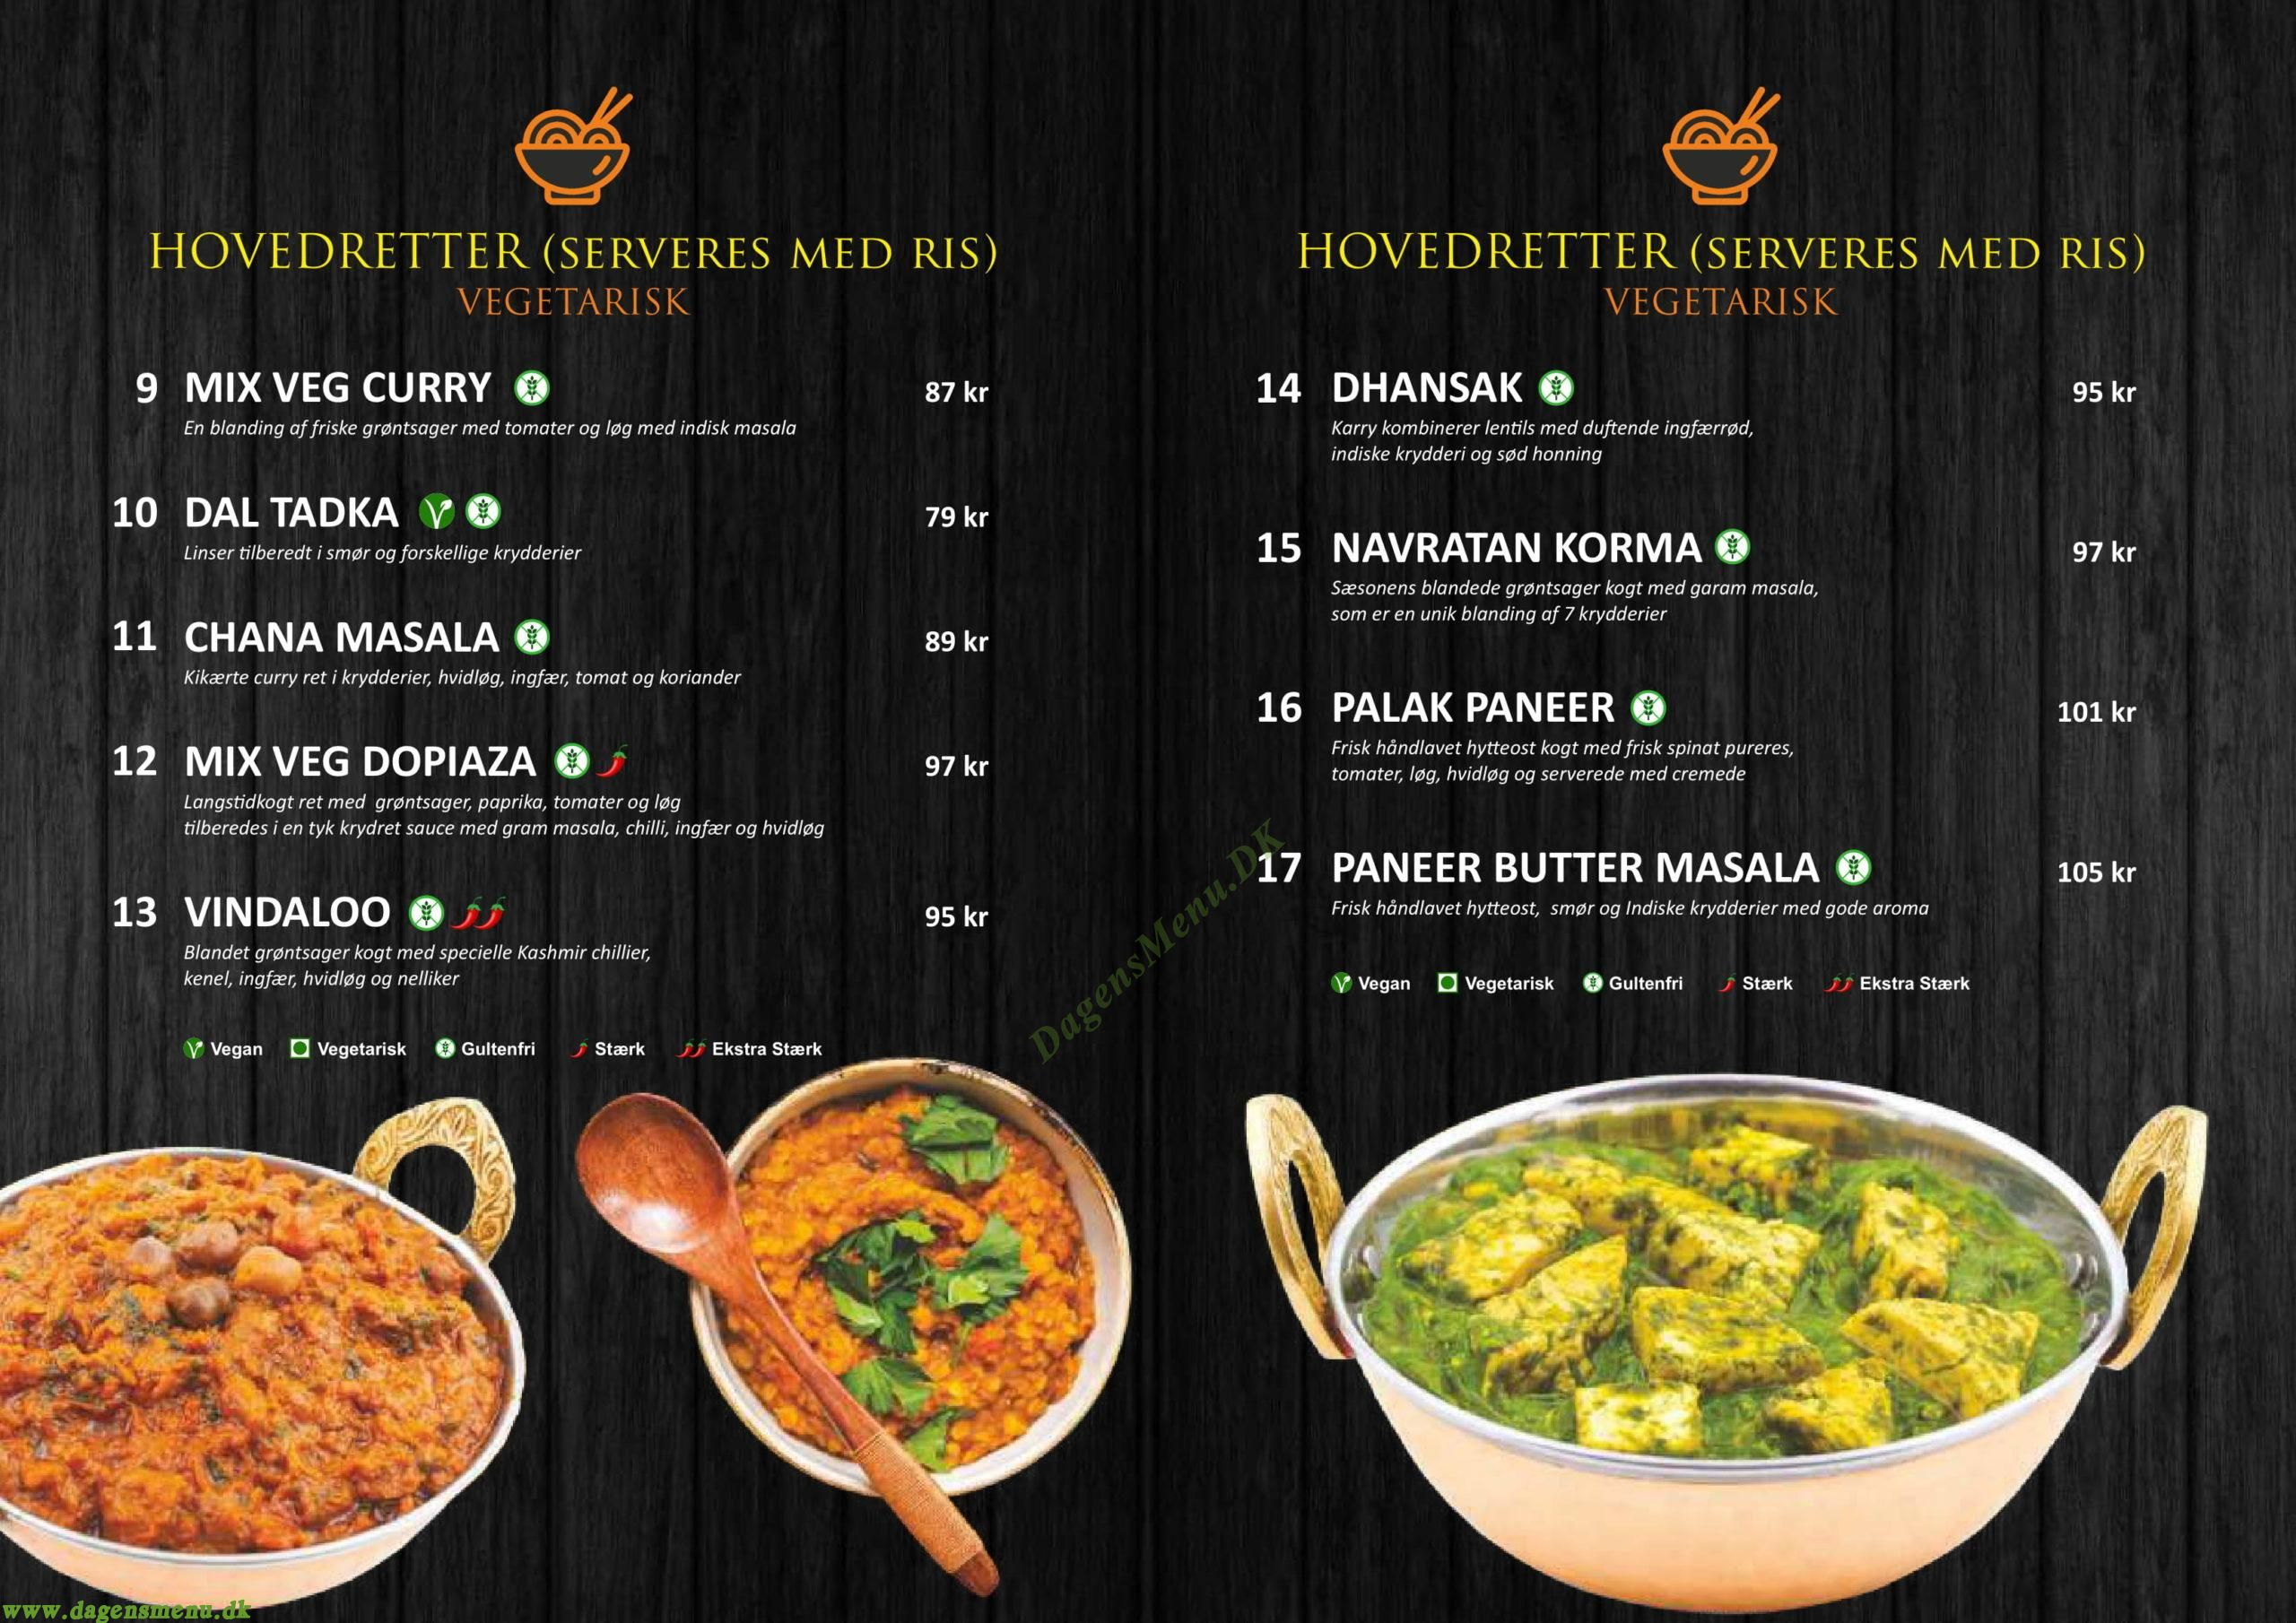 Amaravati Indian Street Food - Indian Restaurant / Takeaway - Menukort